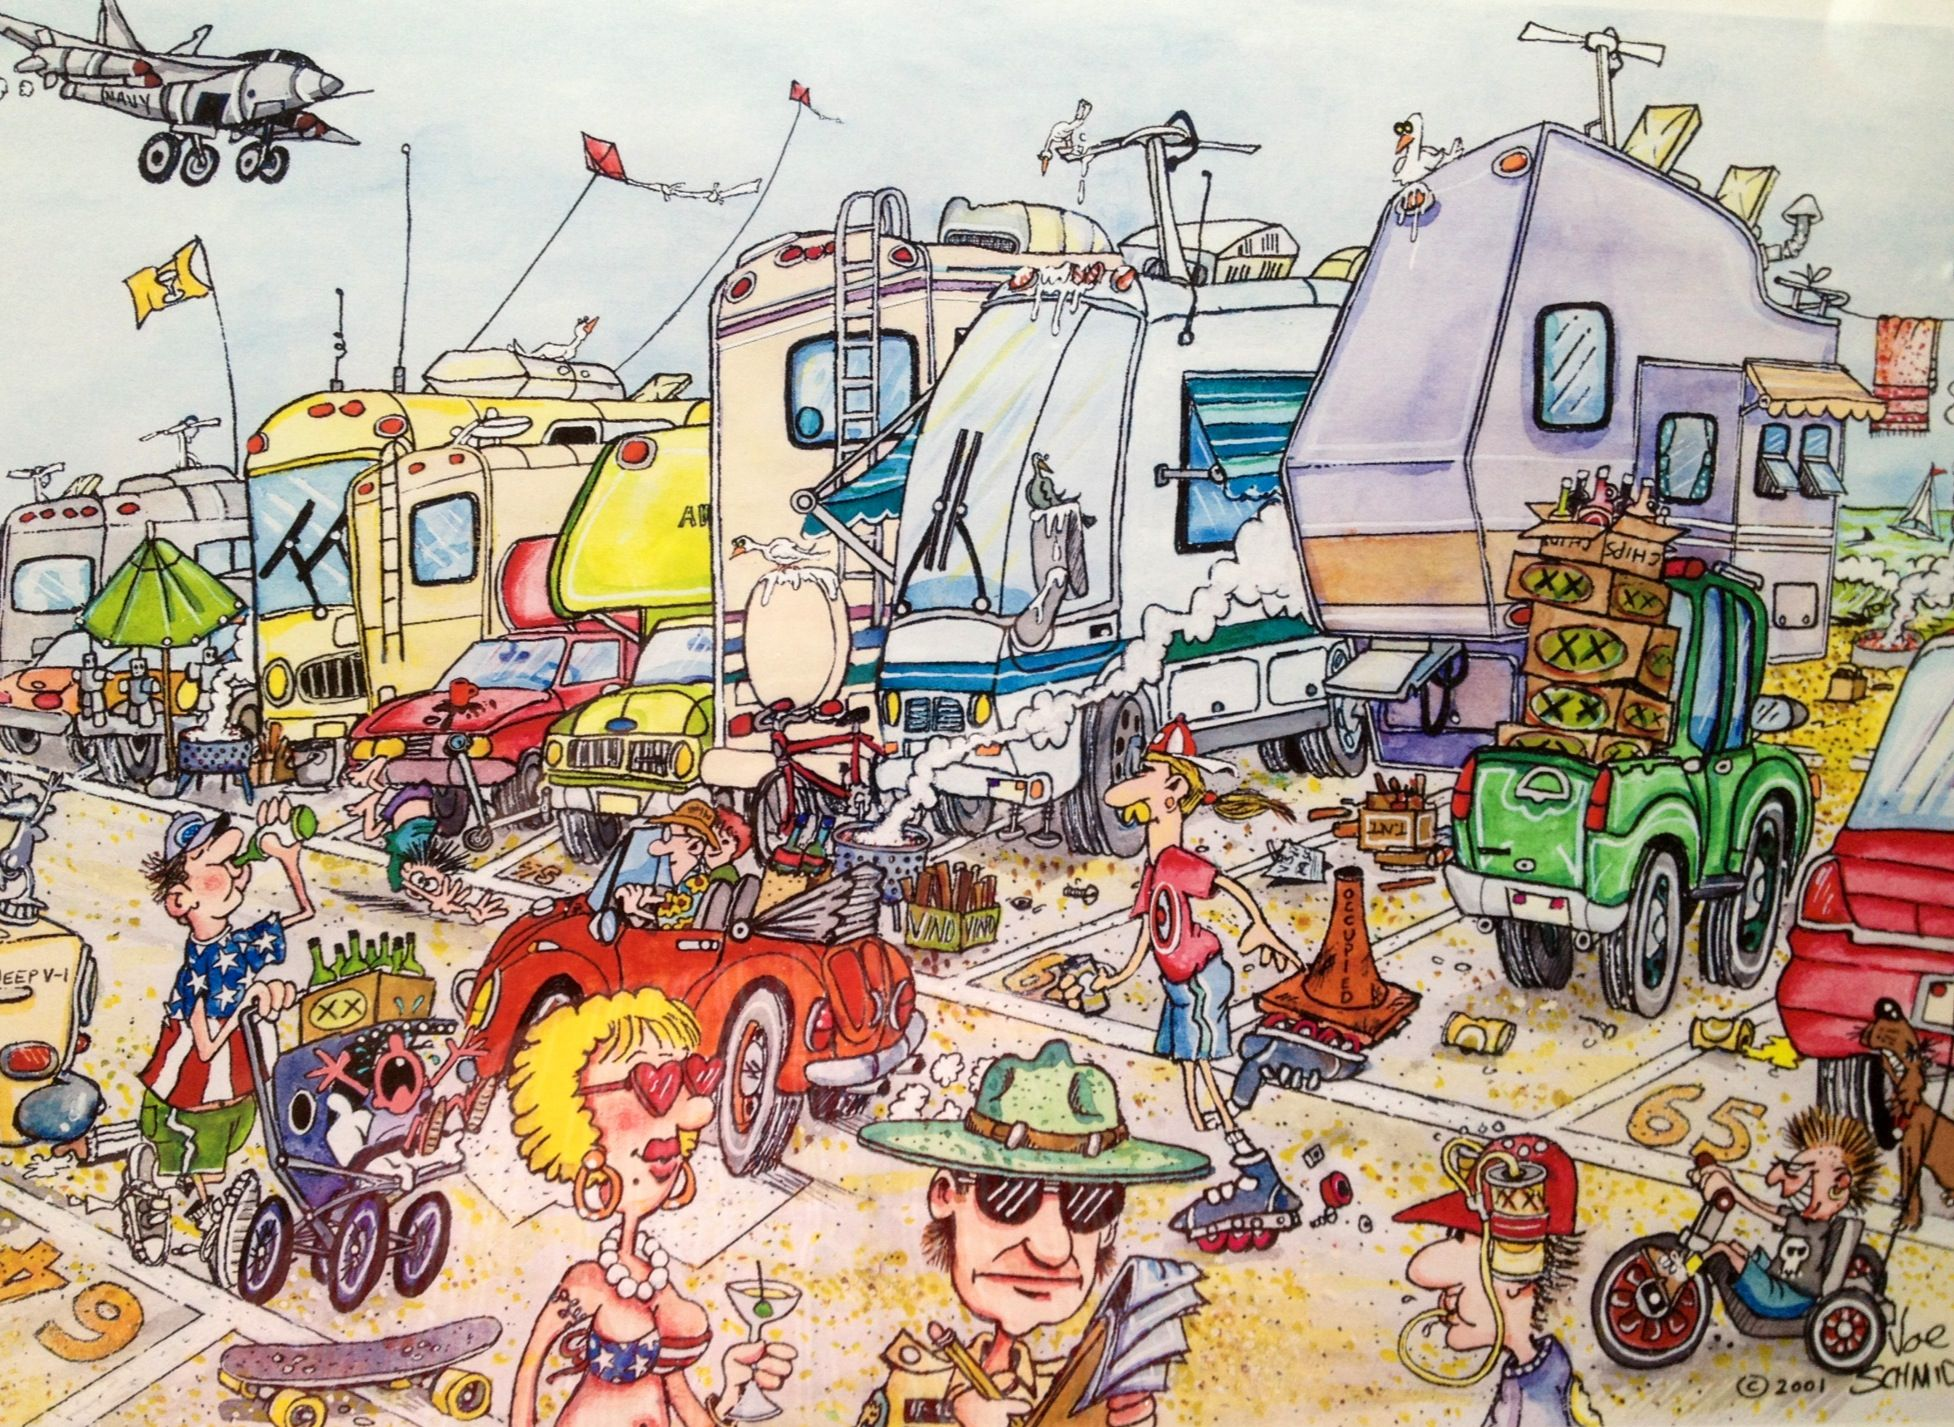 Heebie Jeebie Beach Cartoon Print By Cartoonist Joe Schmidt Creator Of The RV